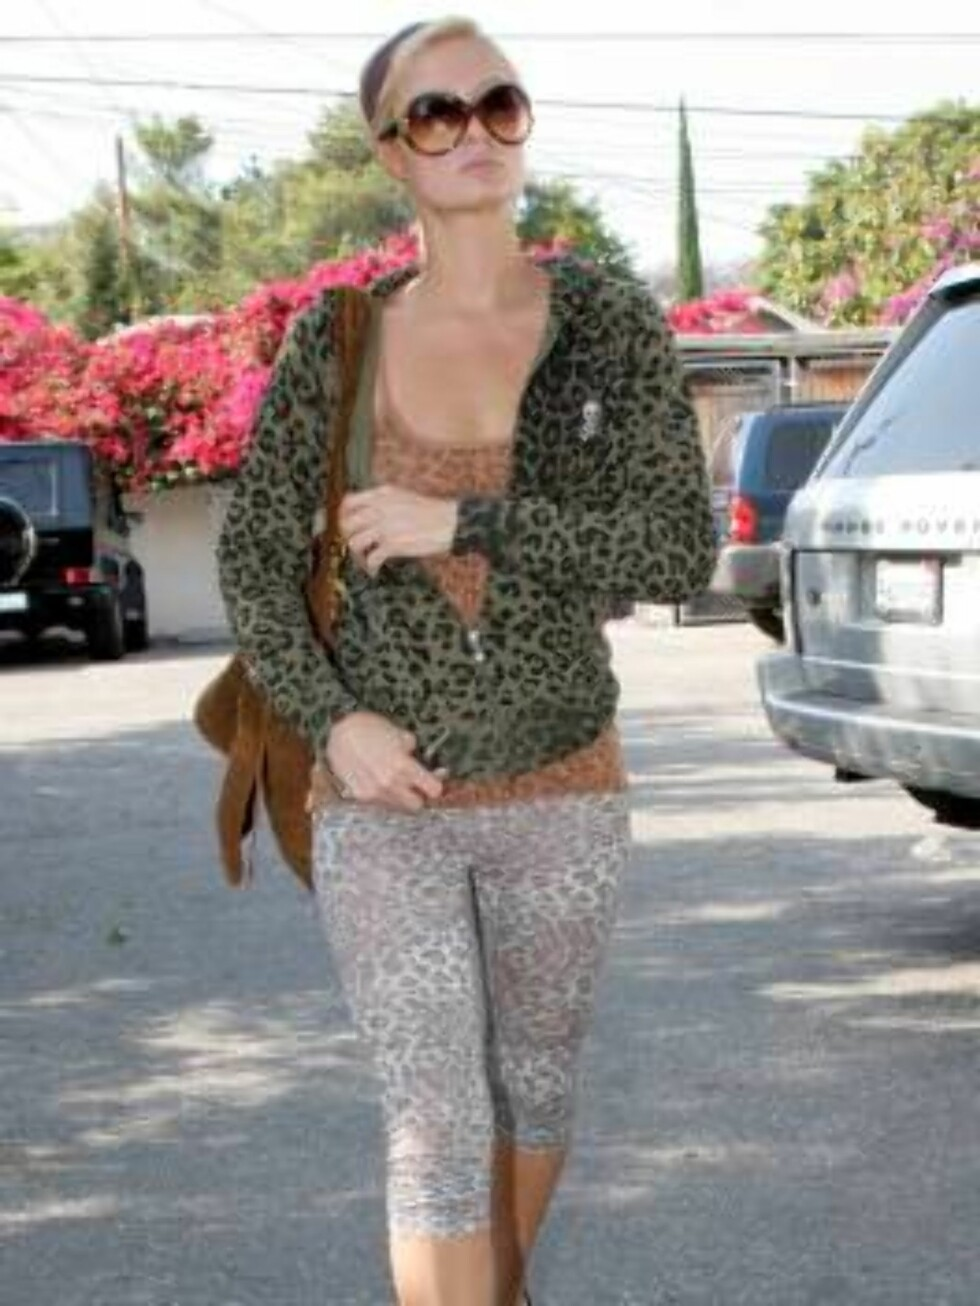 Paris Hilton leaving the gym in Hollywood in leopard June 5, 2006 X17agency exclusive Foto: All Over Press